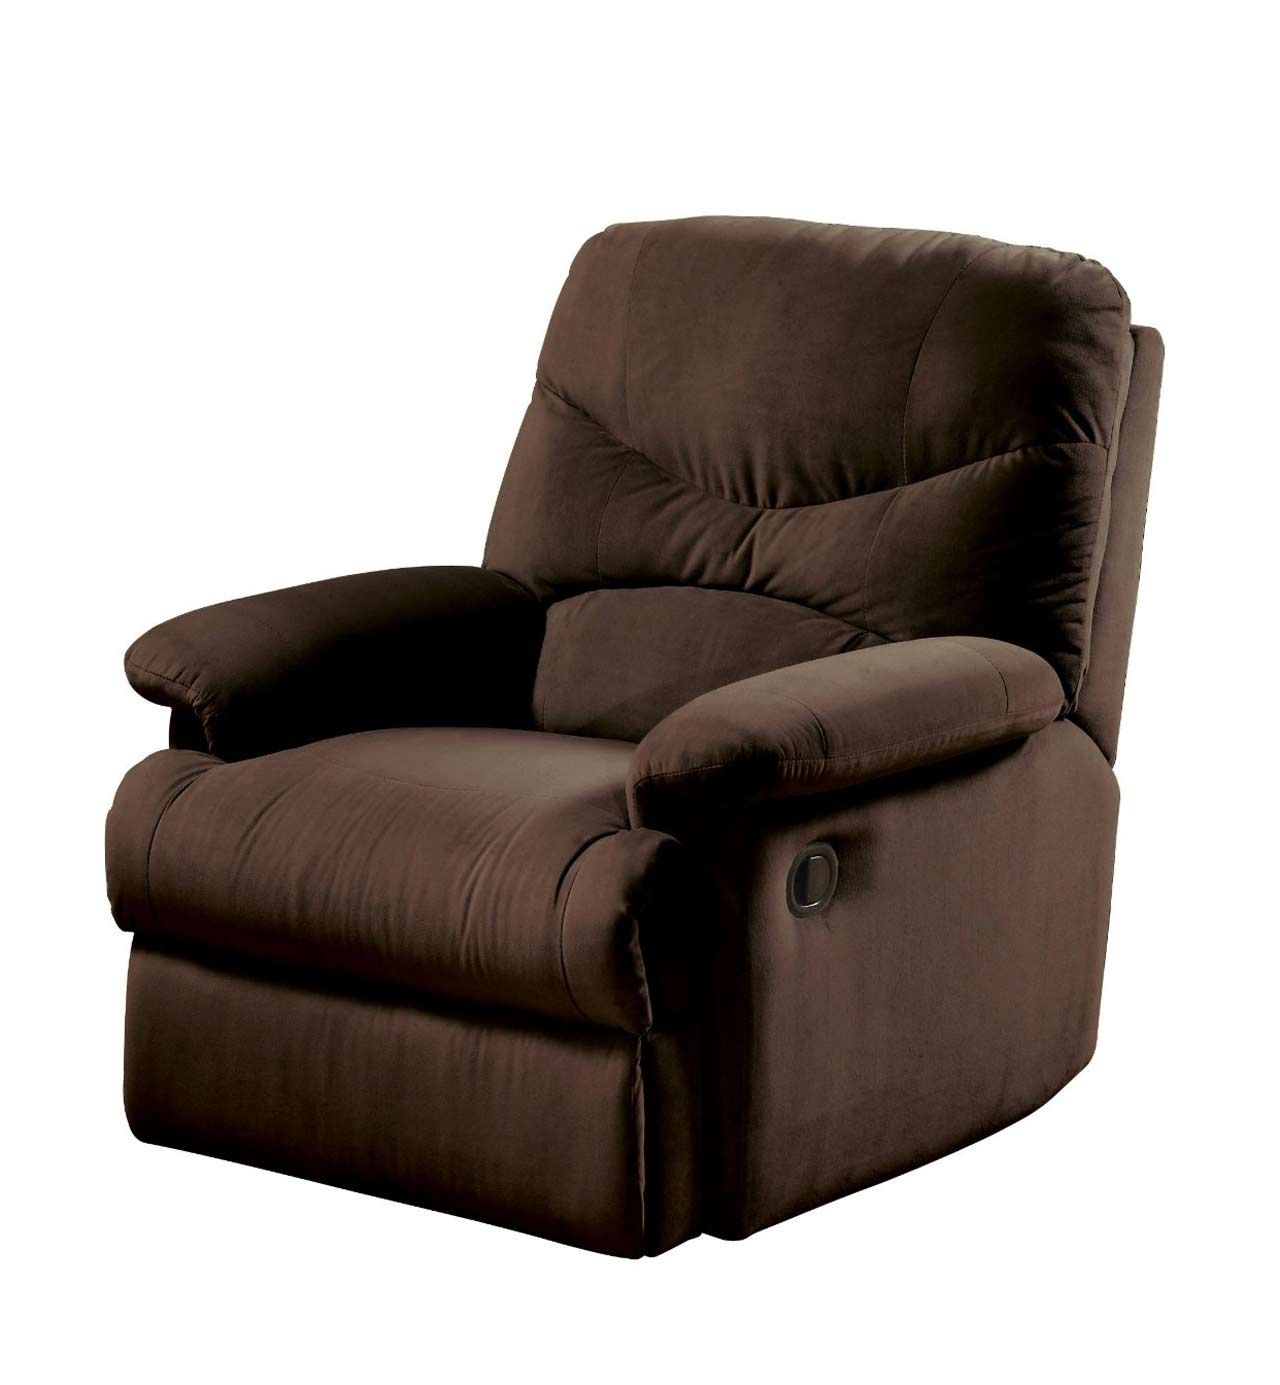 Brown IKEA Recliners Design ~ Http://www.lookmyhomes.com/advantages